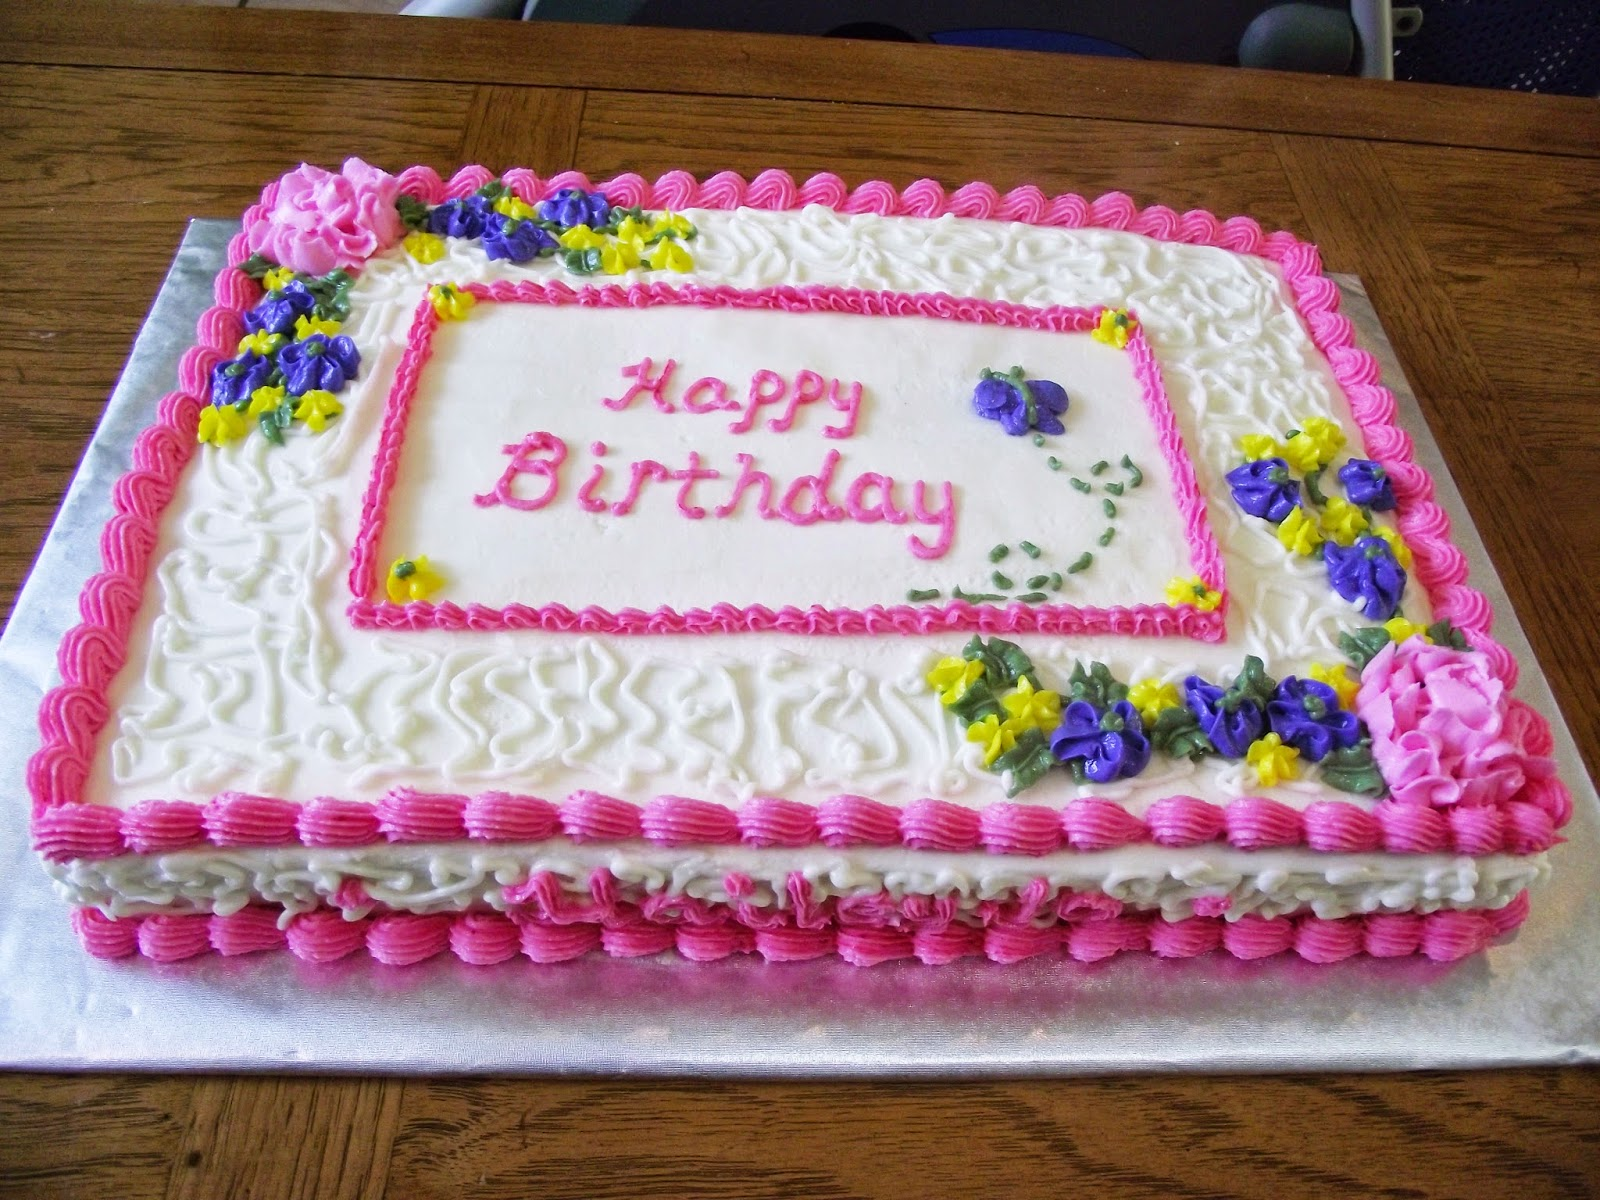 Cake Decorating Ideas Birthday Girl : Top 77 Photos Of Cakes For Birthday Girls Cakes Gallery